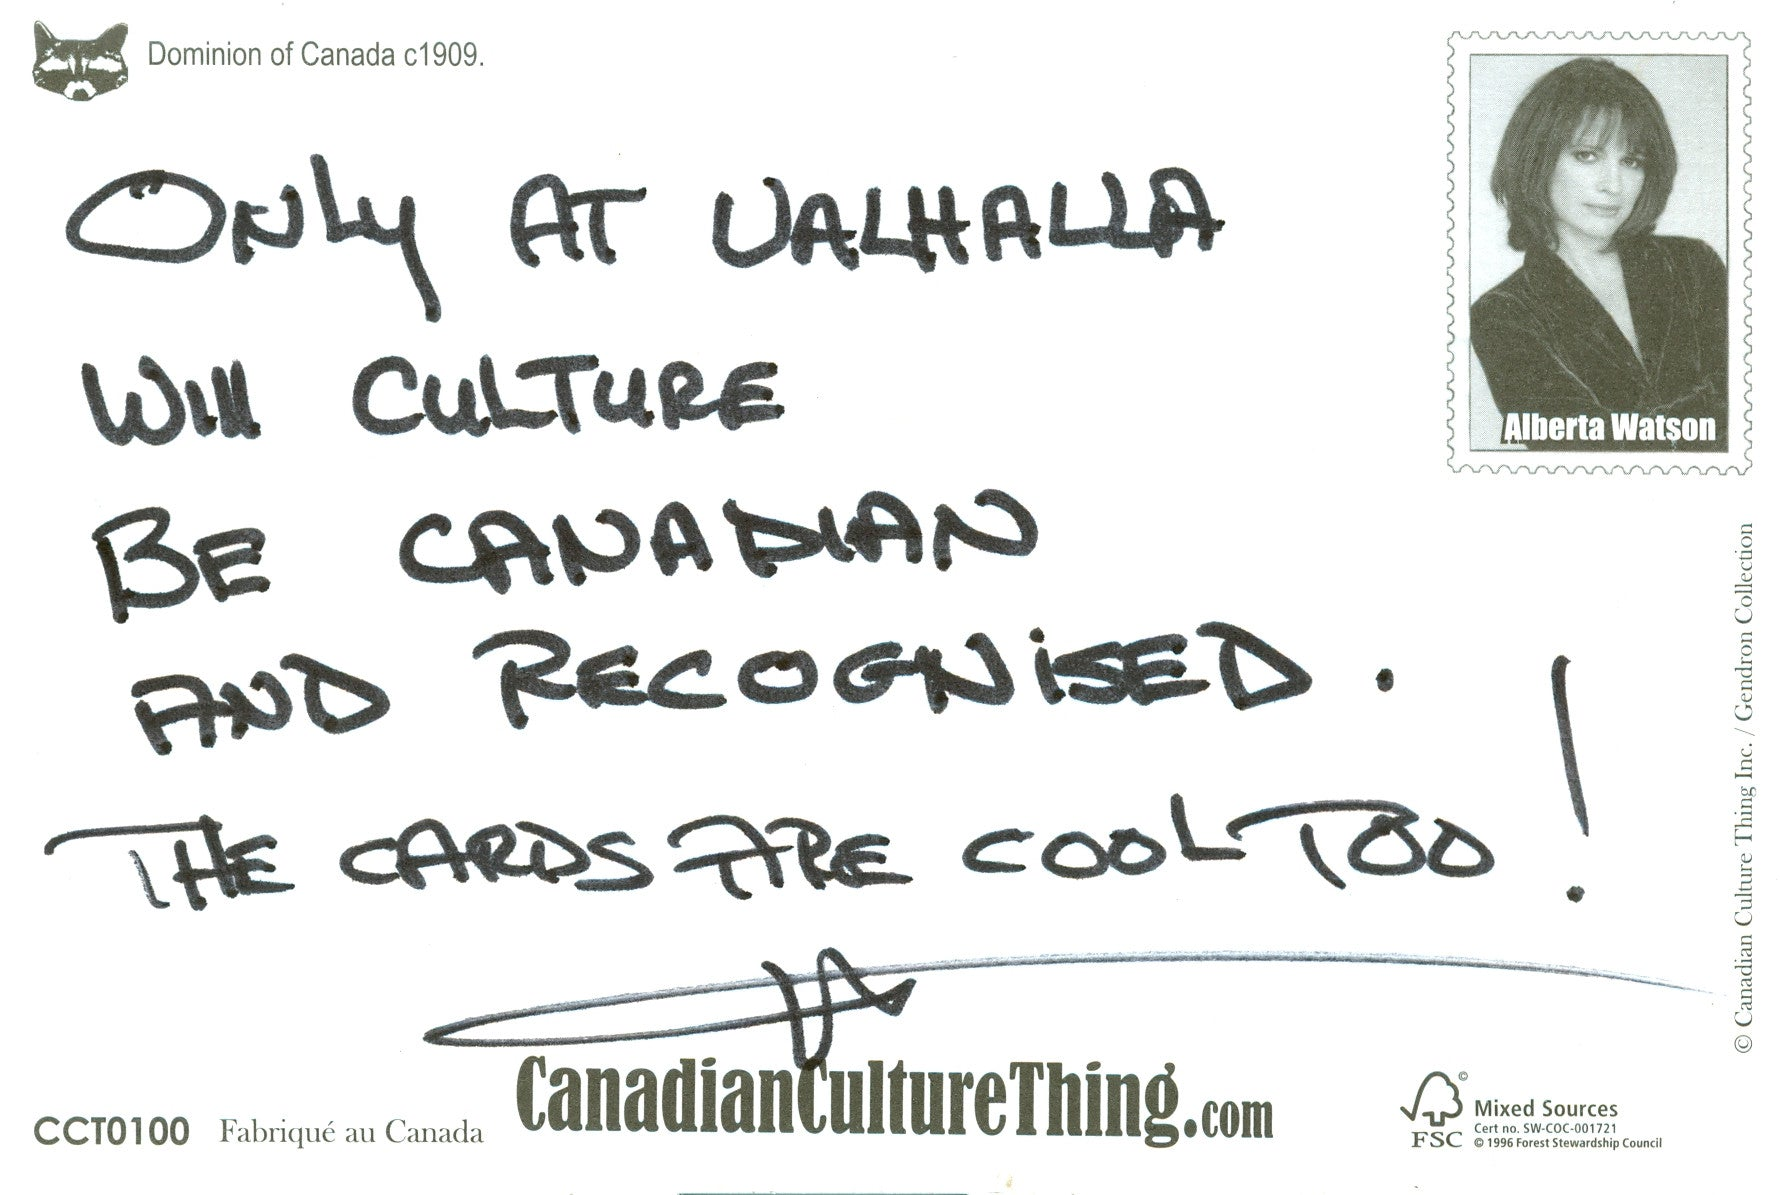 Canadian Culture Thing postcard CCT0100